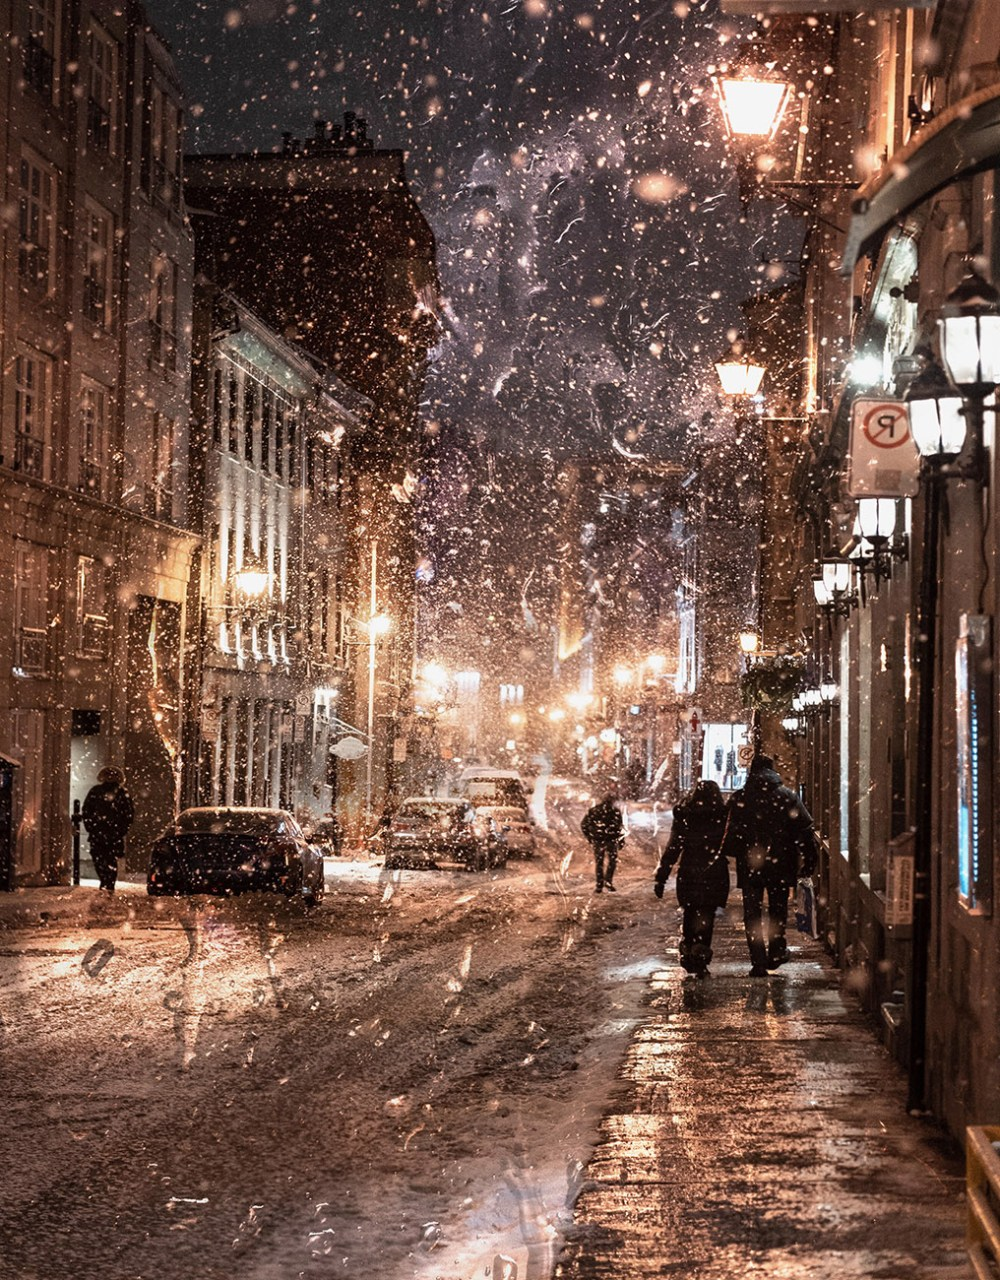 Bad-Winter-Weather-in-City-Street